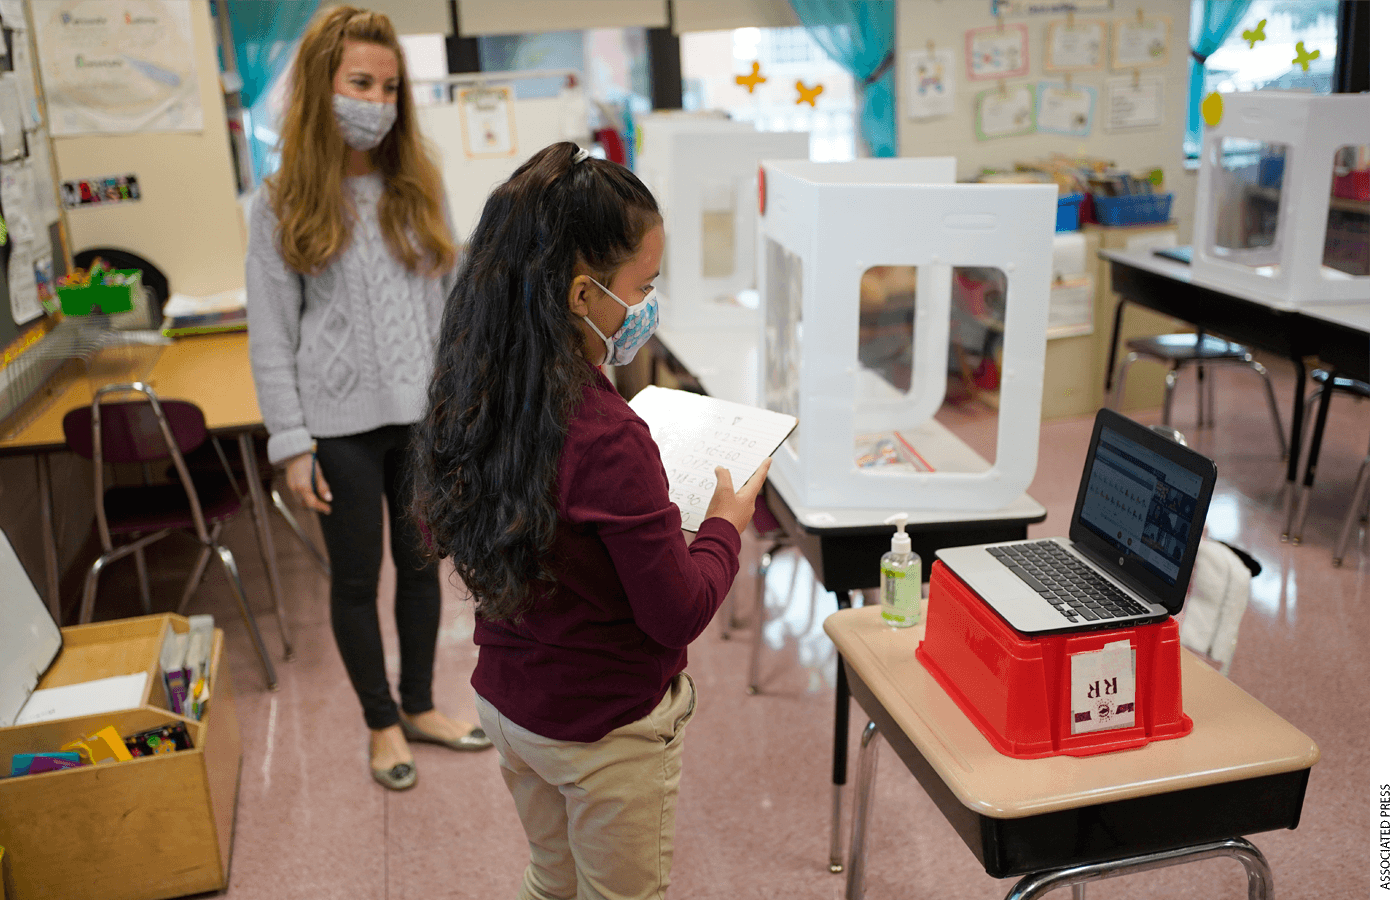 Third grader Madison Cortes, right, reads off math problems to classmates on zoom while teacher Maria Mirkovic looks on at Christa McAuliffe School in Jersey City, N.J., Thursday, April 29, 2021.